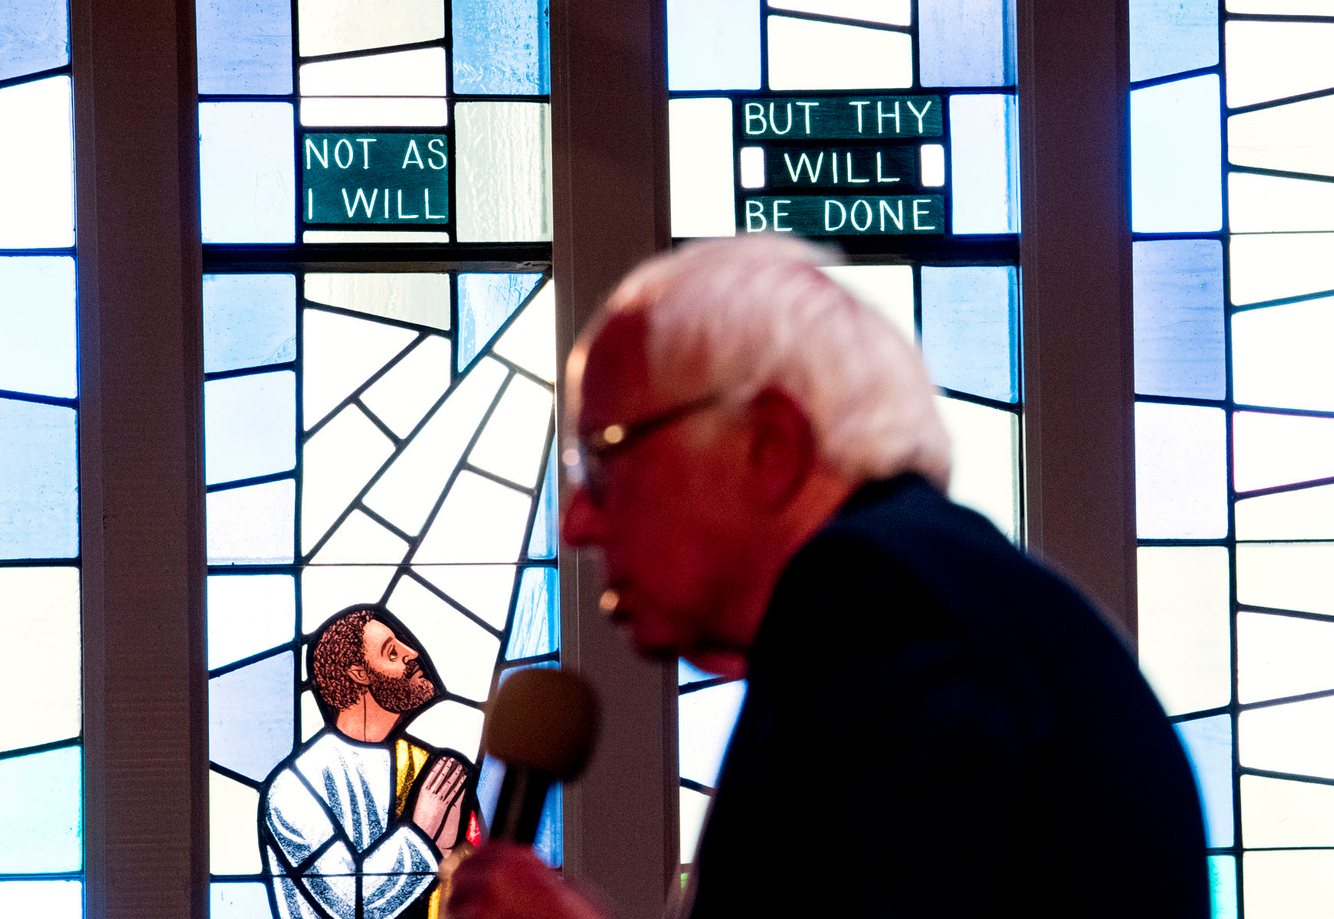 Bernie Sanders speaks at a church during a campaign event in Oakland, California.